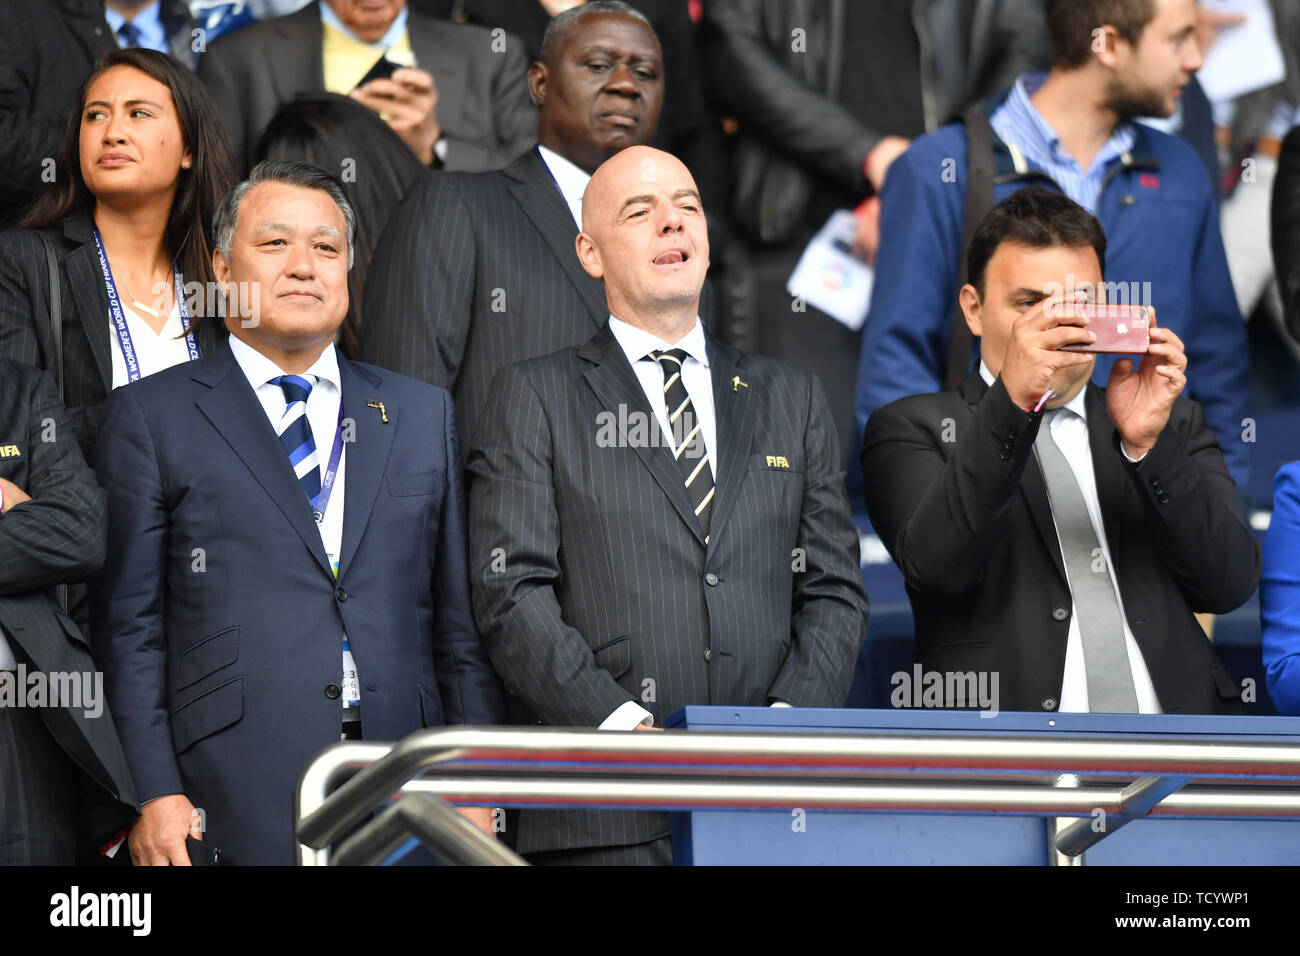 10 june 2019 Paris, France Soccer Women's World Cup France 2019: Argentina v Japan   Gianni Infantino in the stands - Stock Image